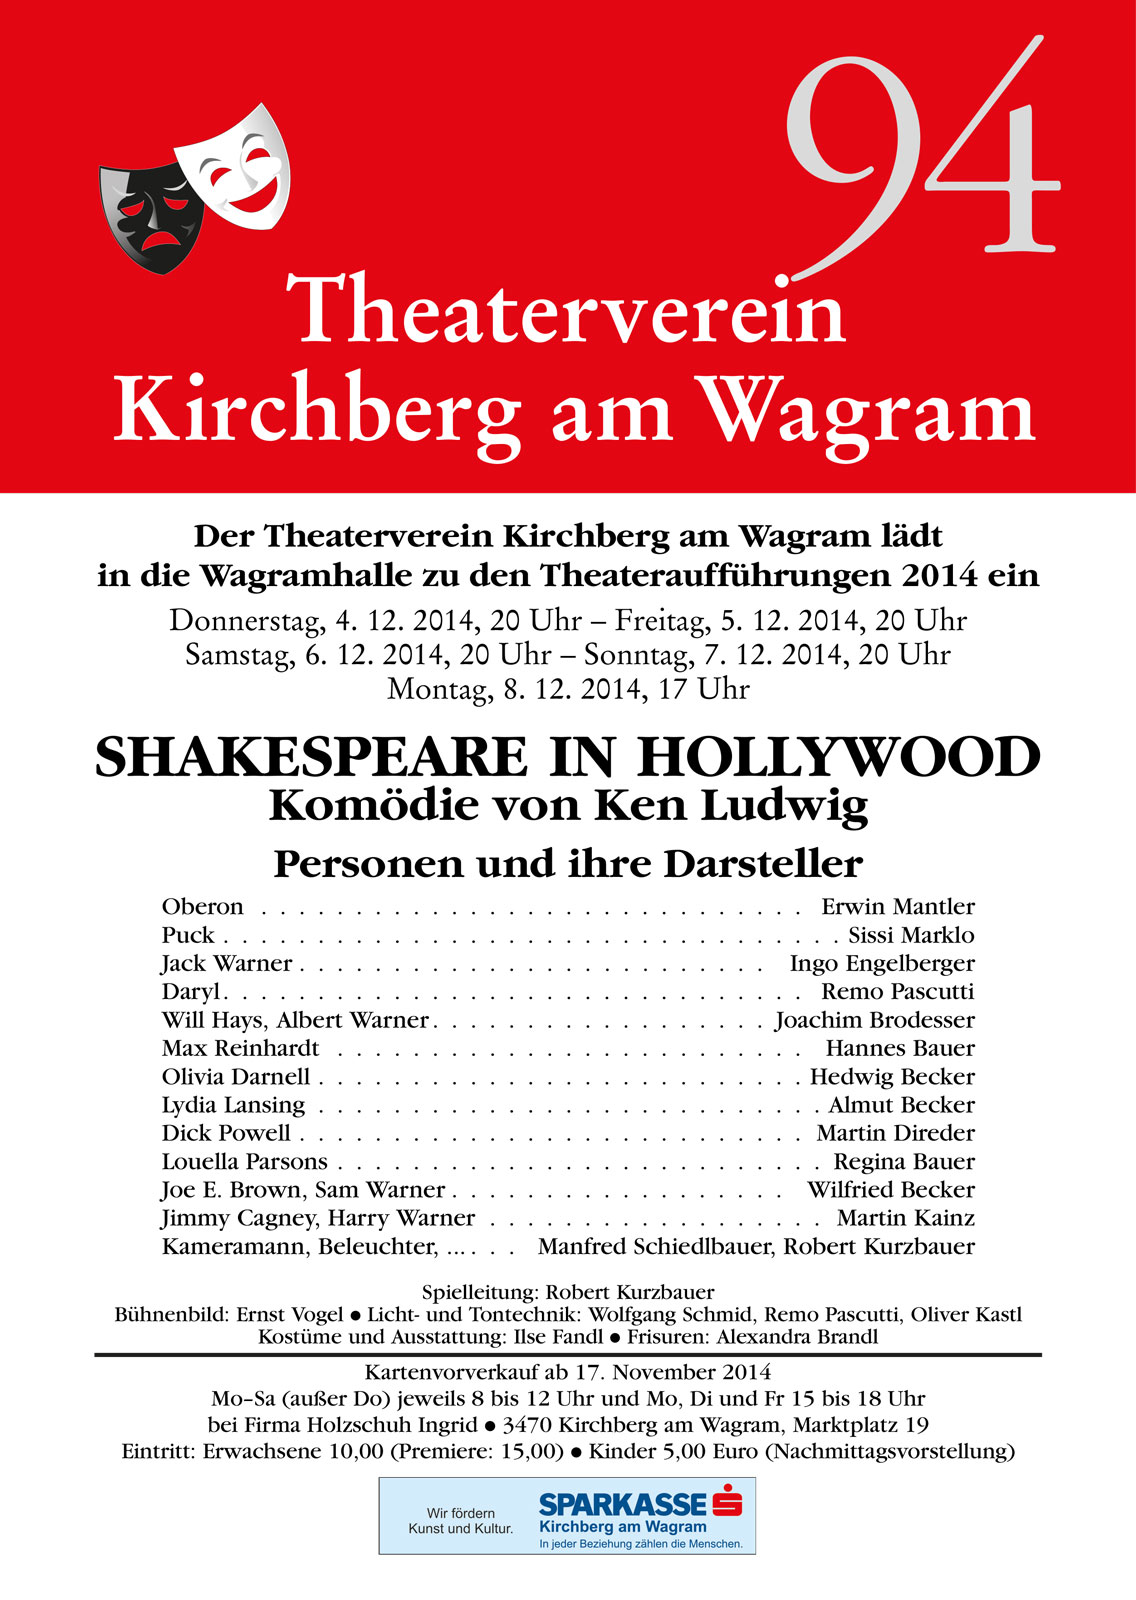 2014 Shakespeare in Hollywood